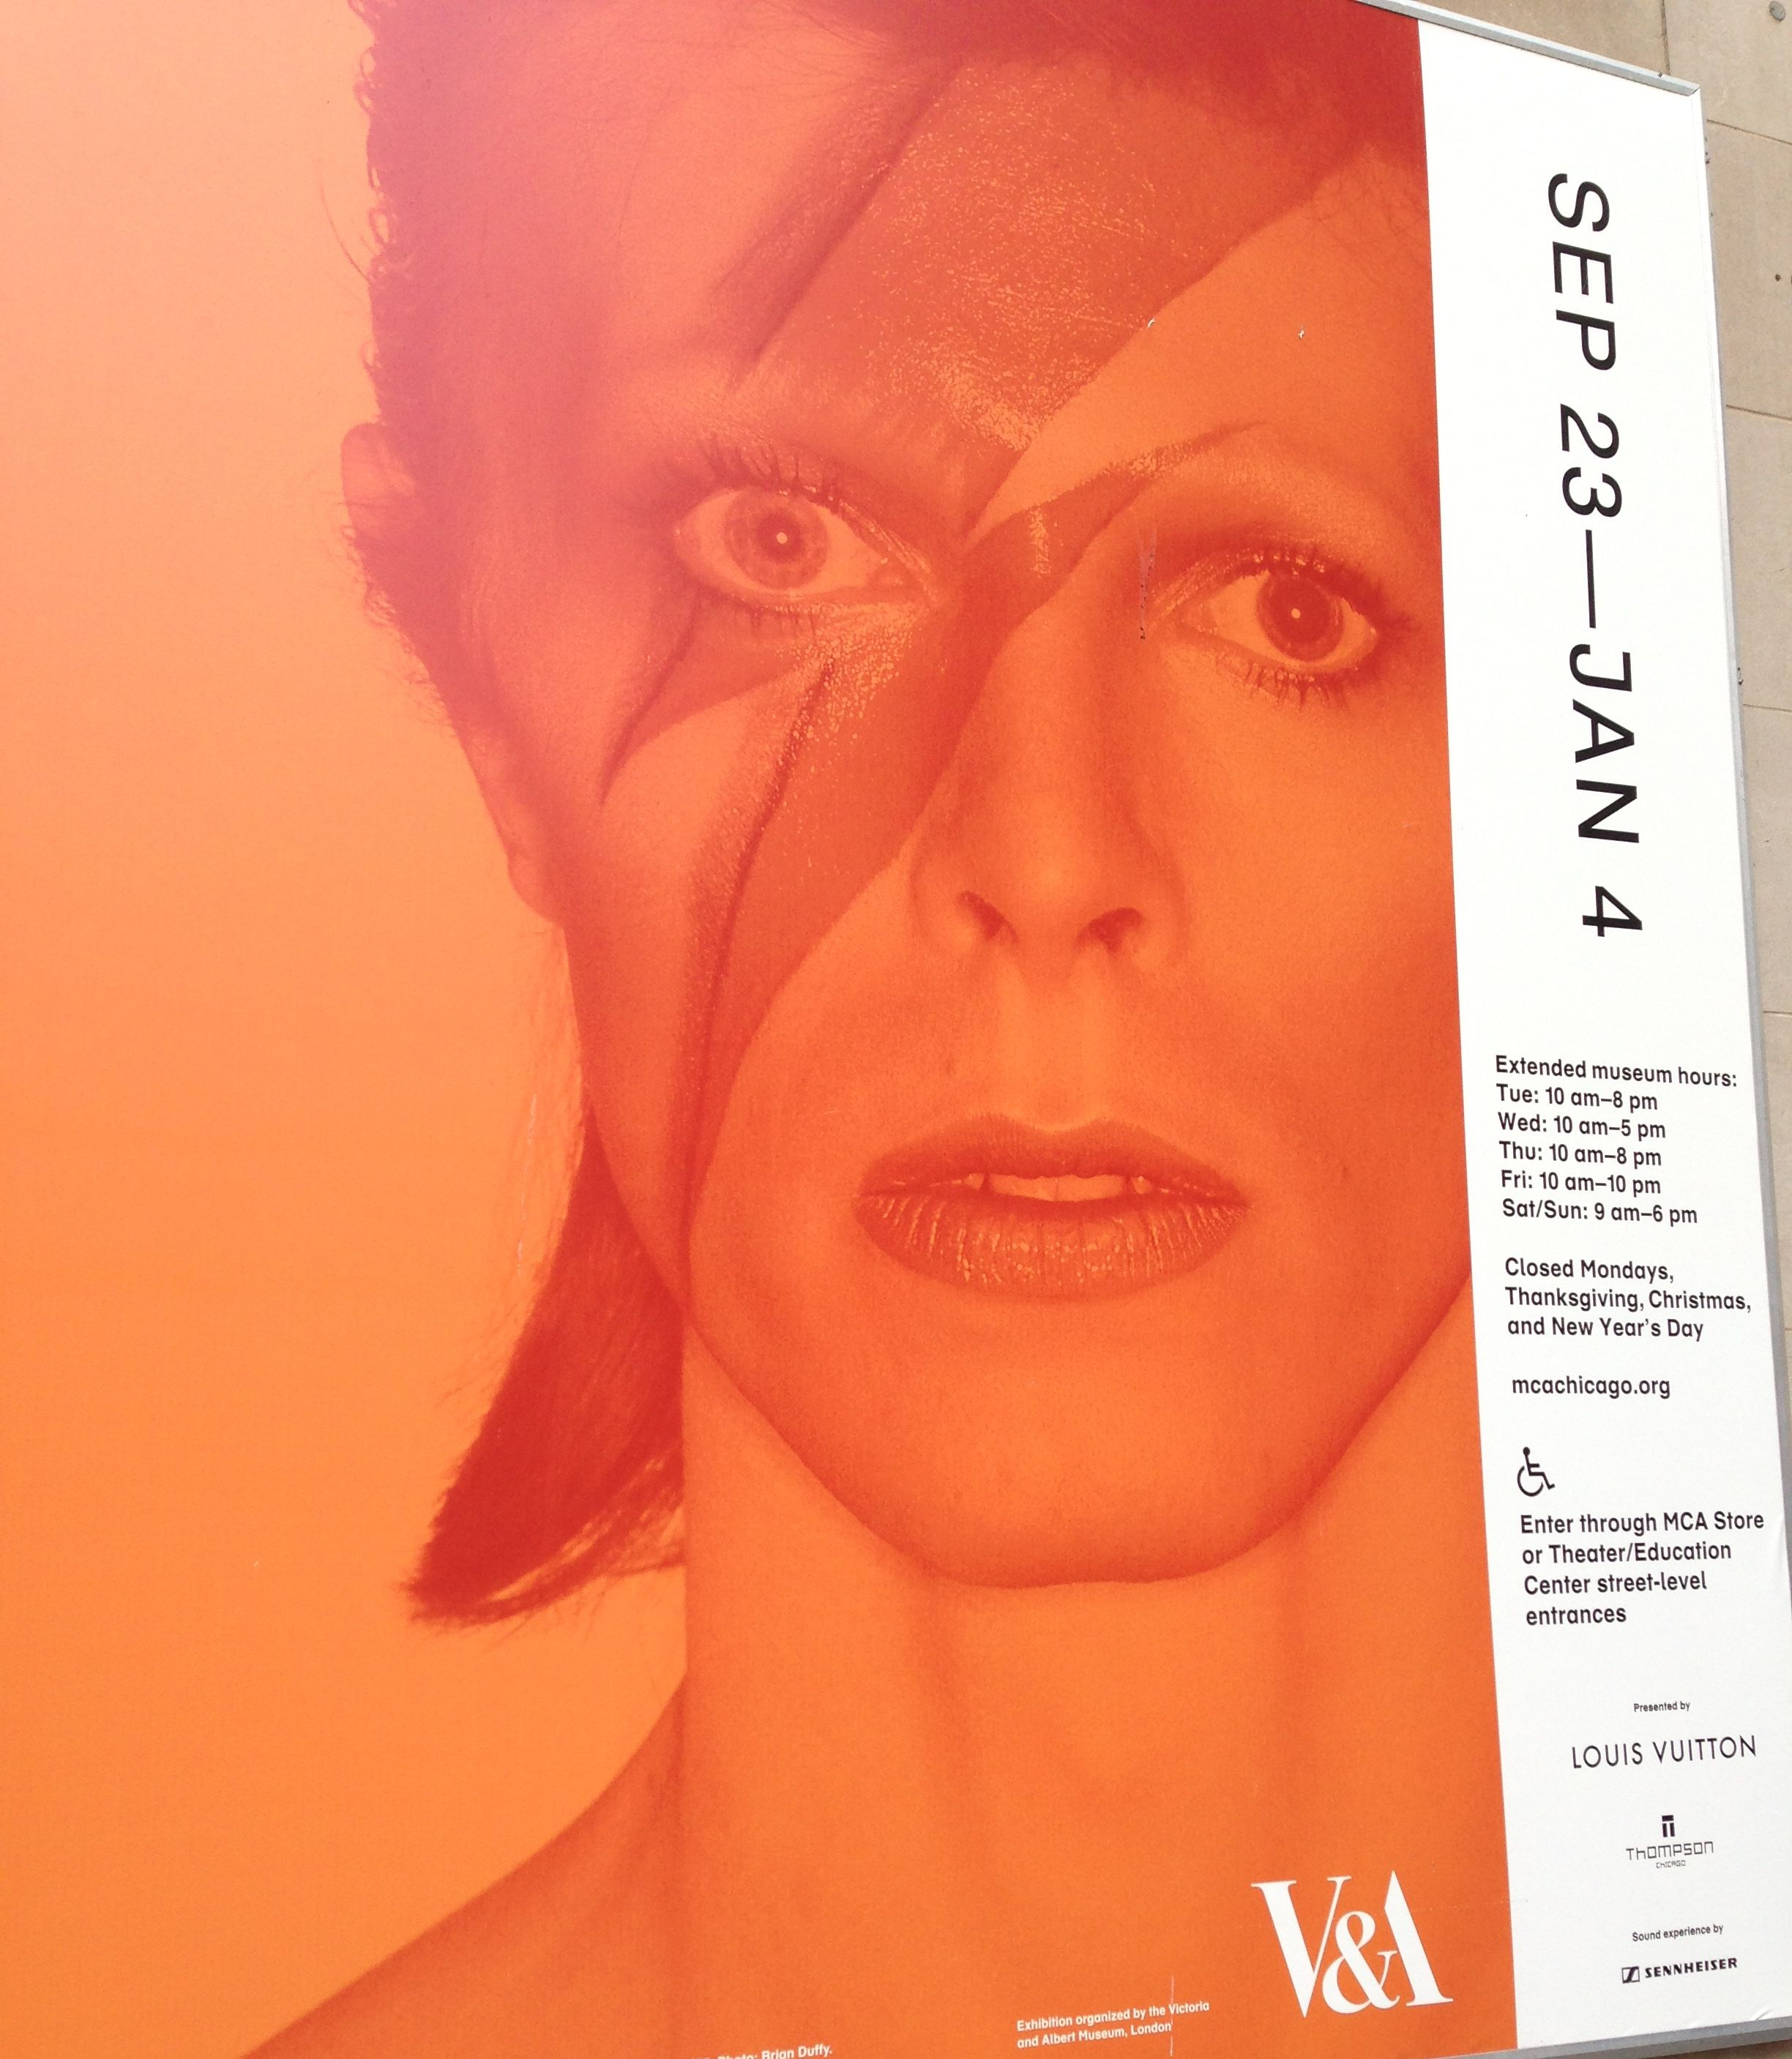 David Bowie Is Museum of Contemporary Art, November 2014